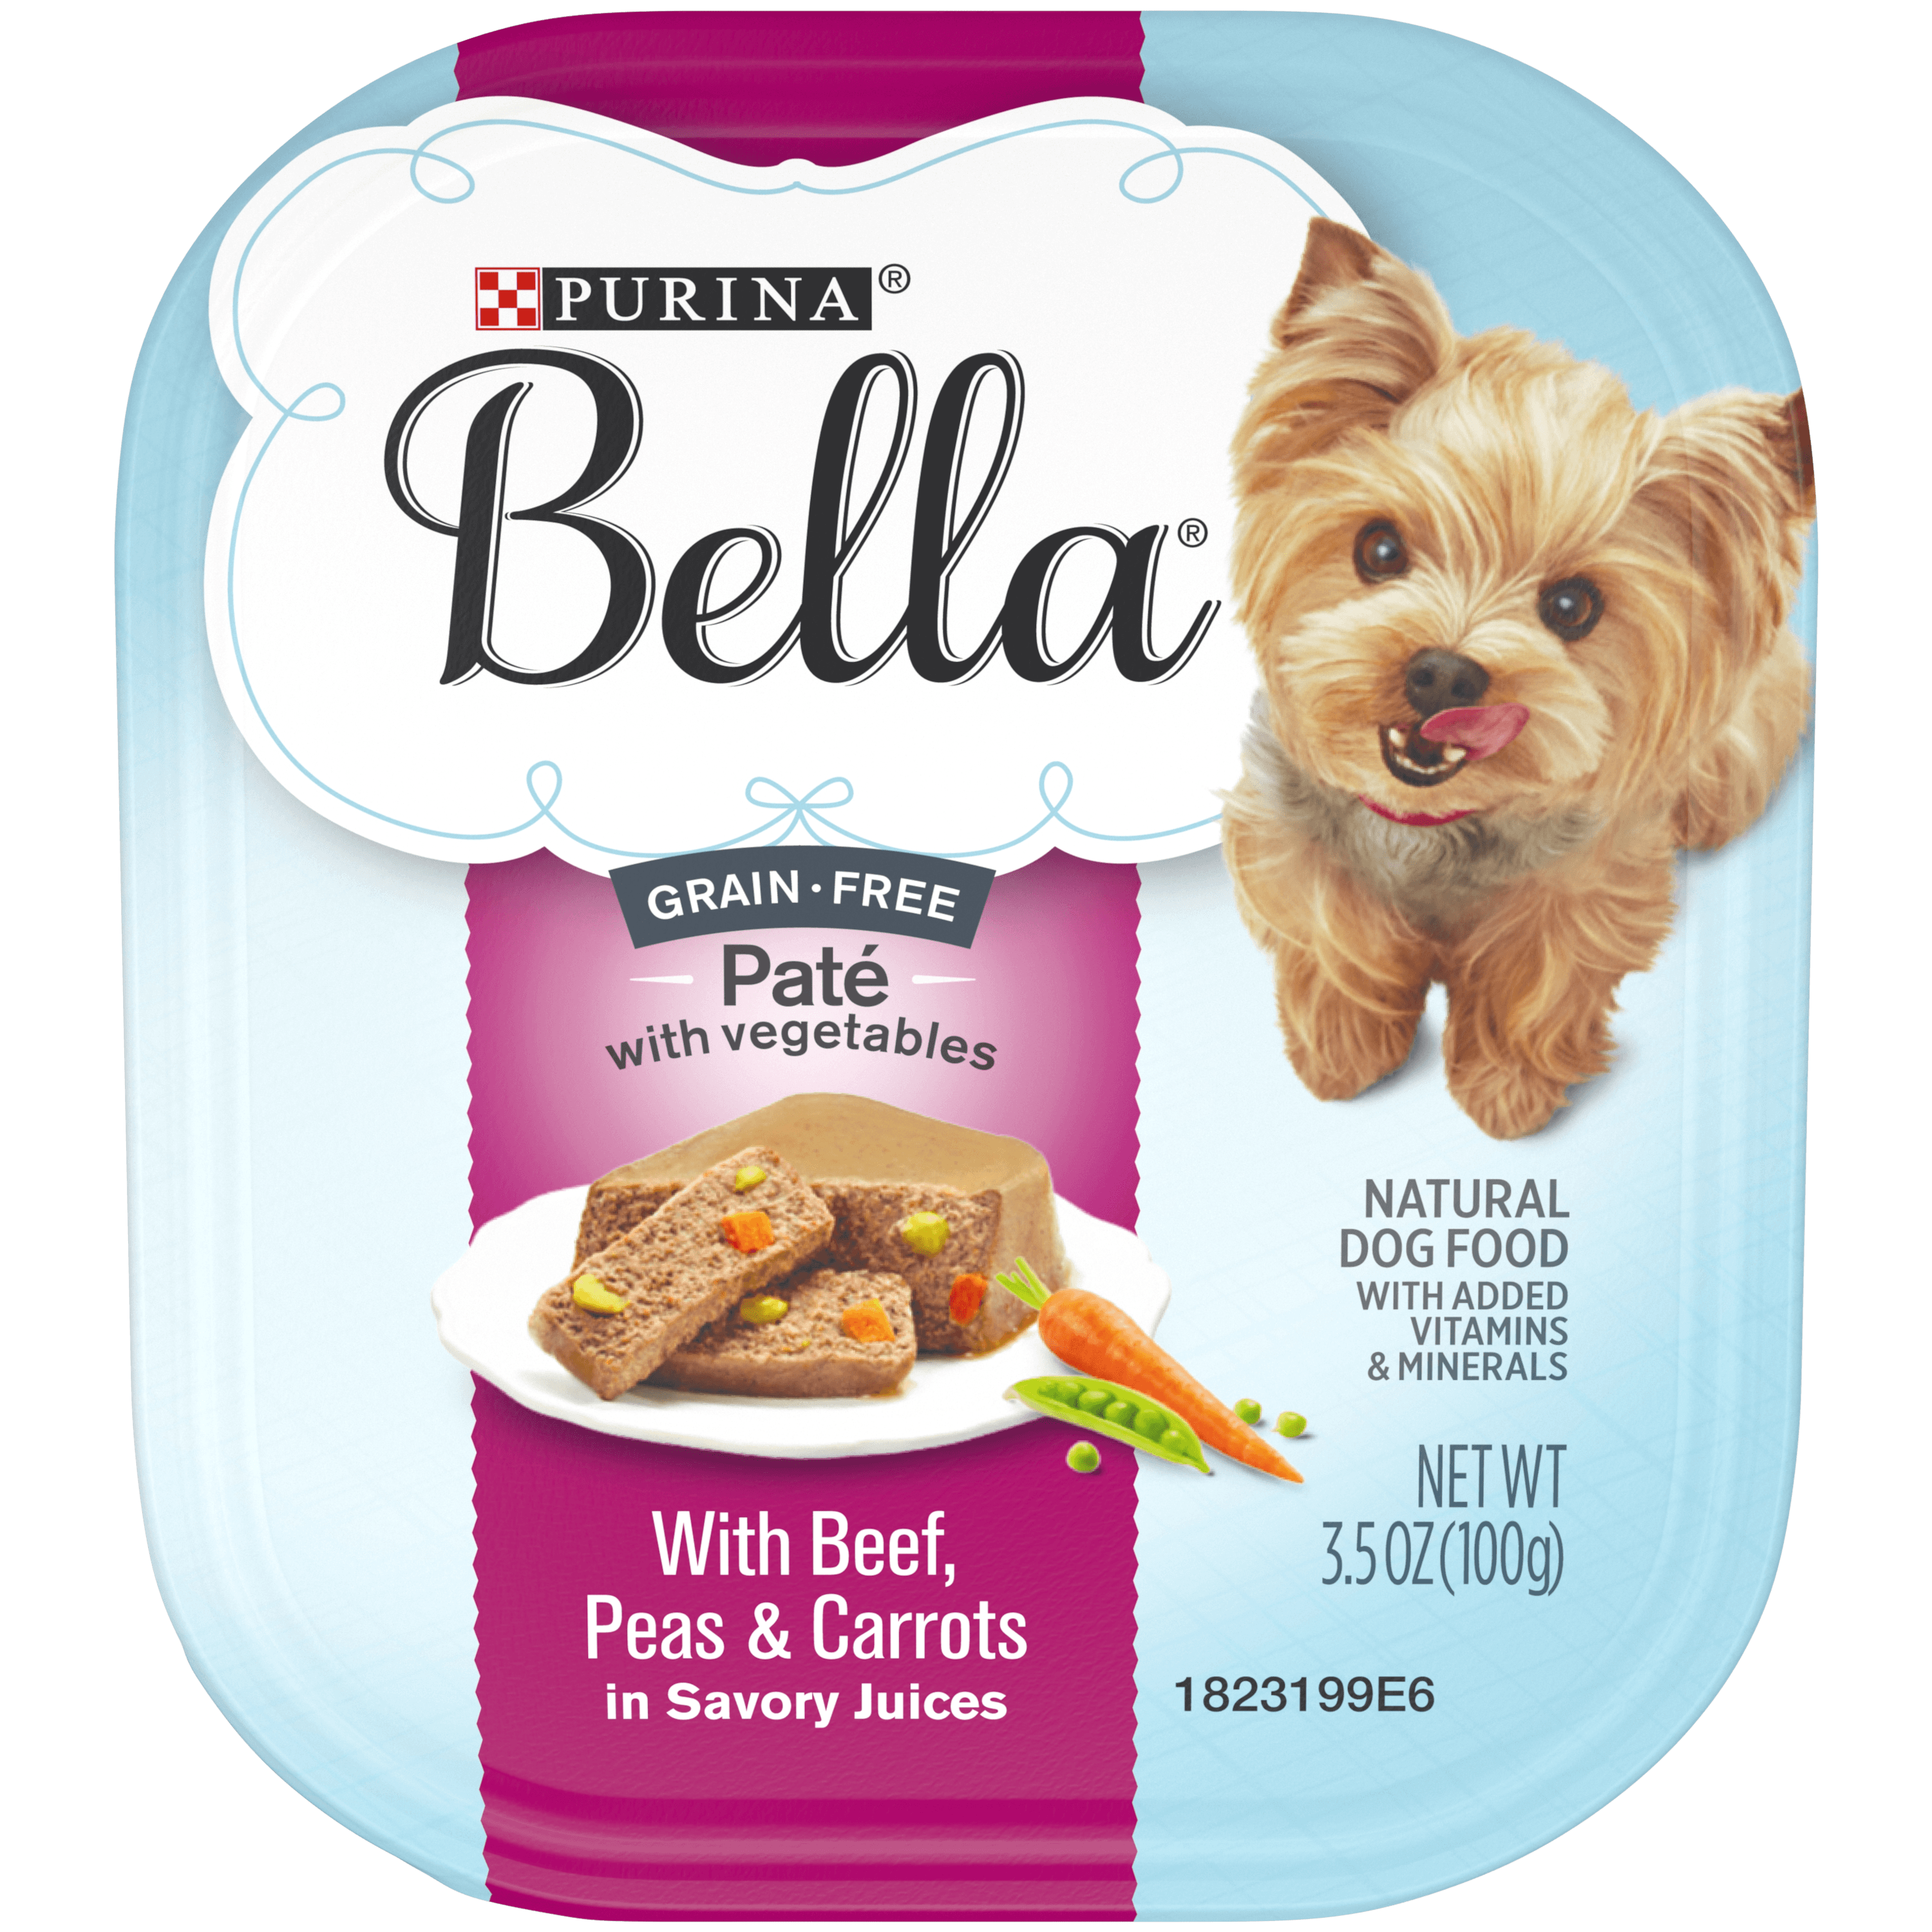 Purina Bella Natural Grain Free Pate With Beef Plus Added Vitamins & Minerals Adult Wet Dog Food - (12) 3.5 oz. Trays